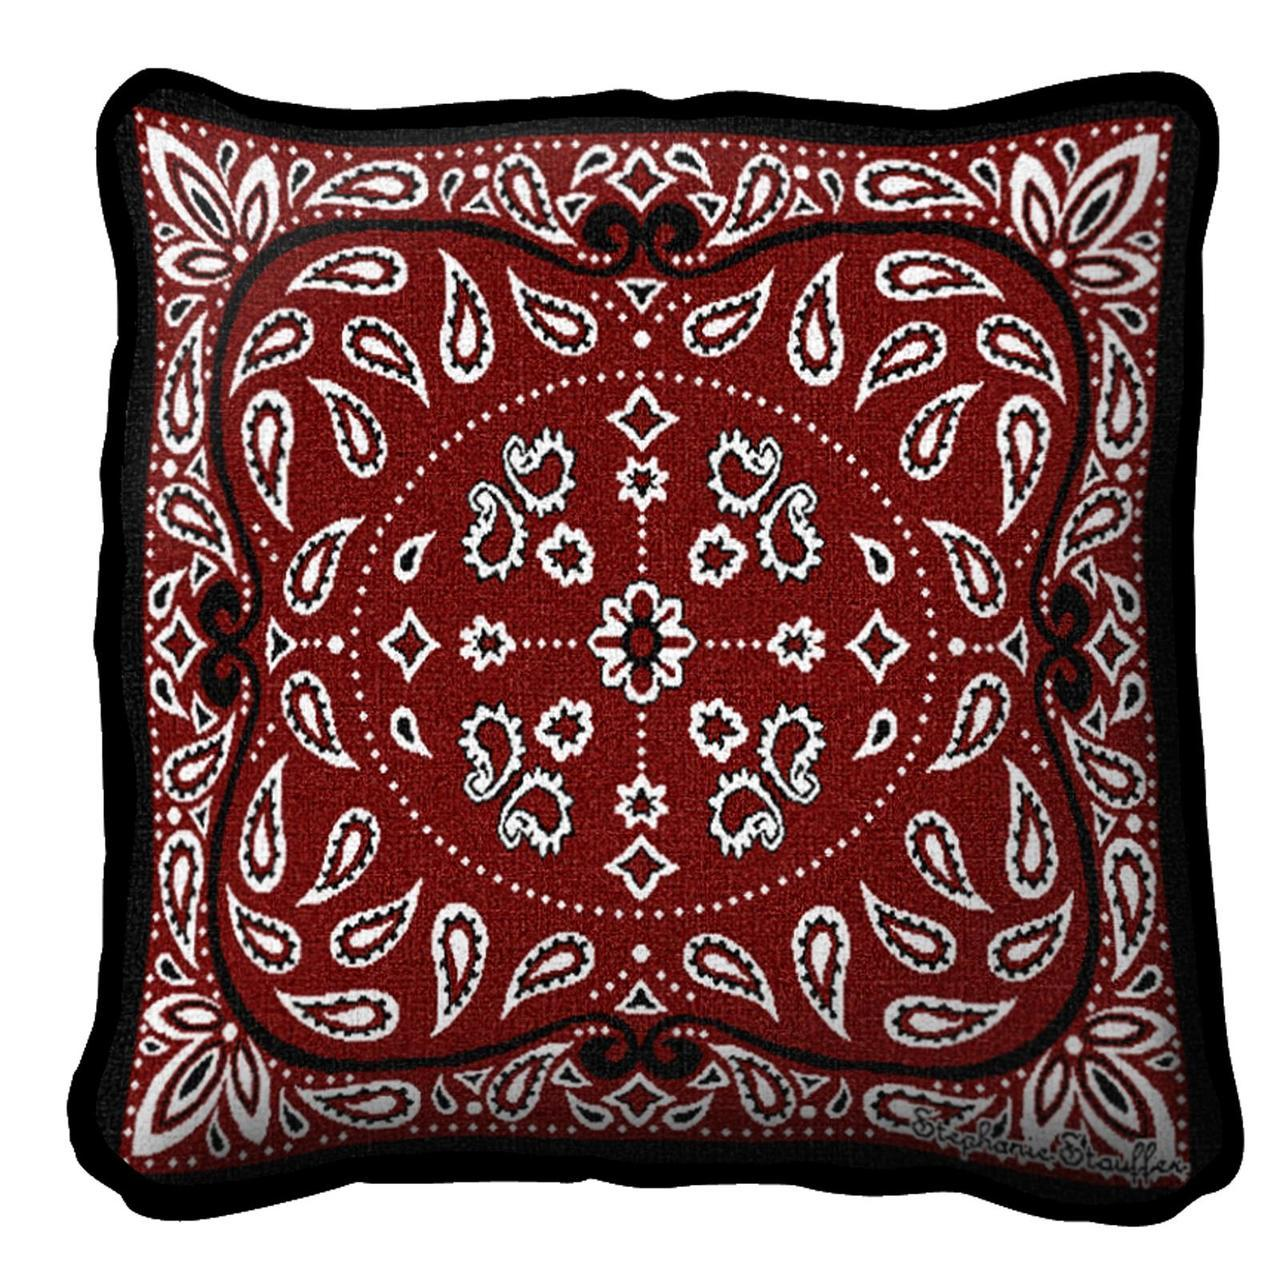 Throw Pillow-17 x 17-Americana-Red Bandana